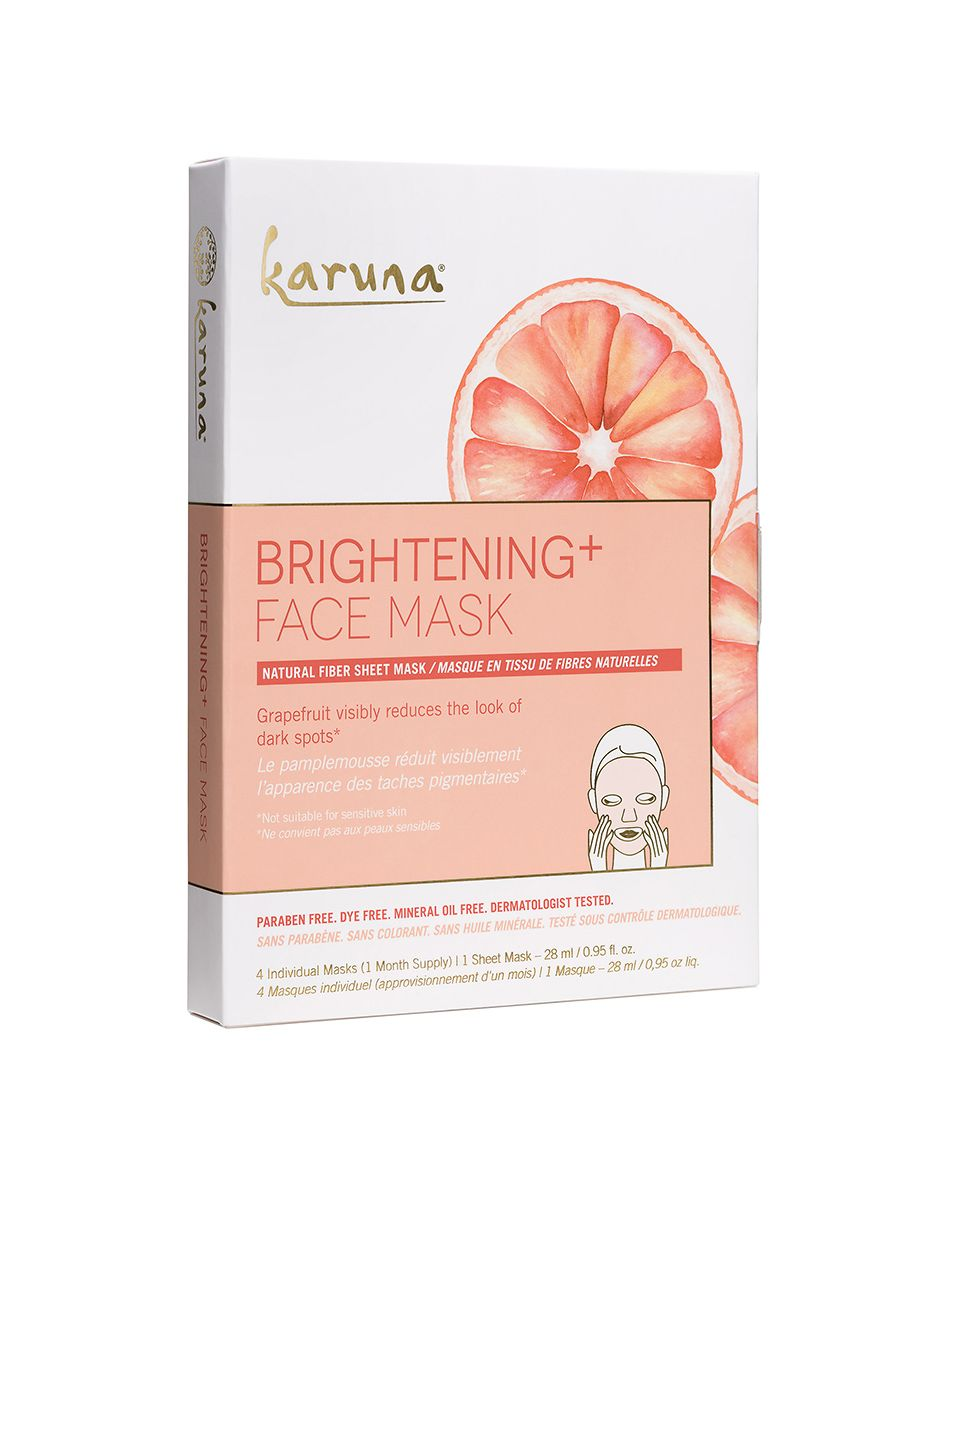 Karuna Brightening Mask 4 Pack in